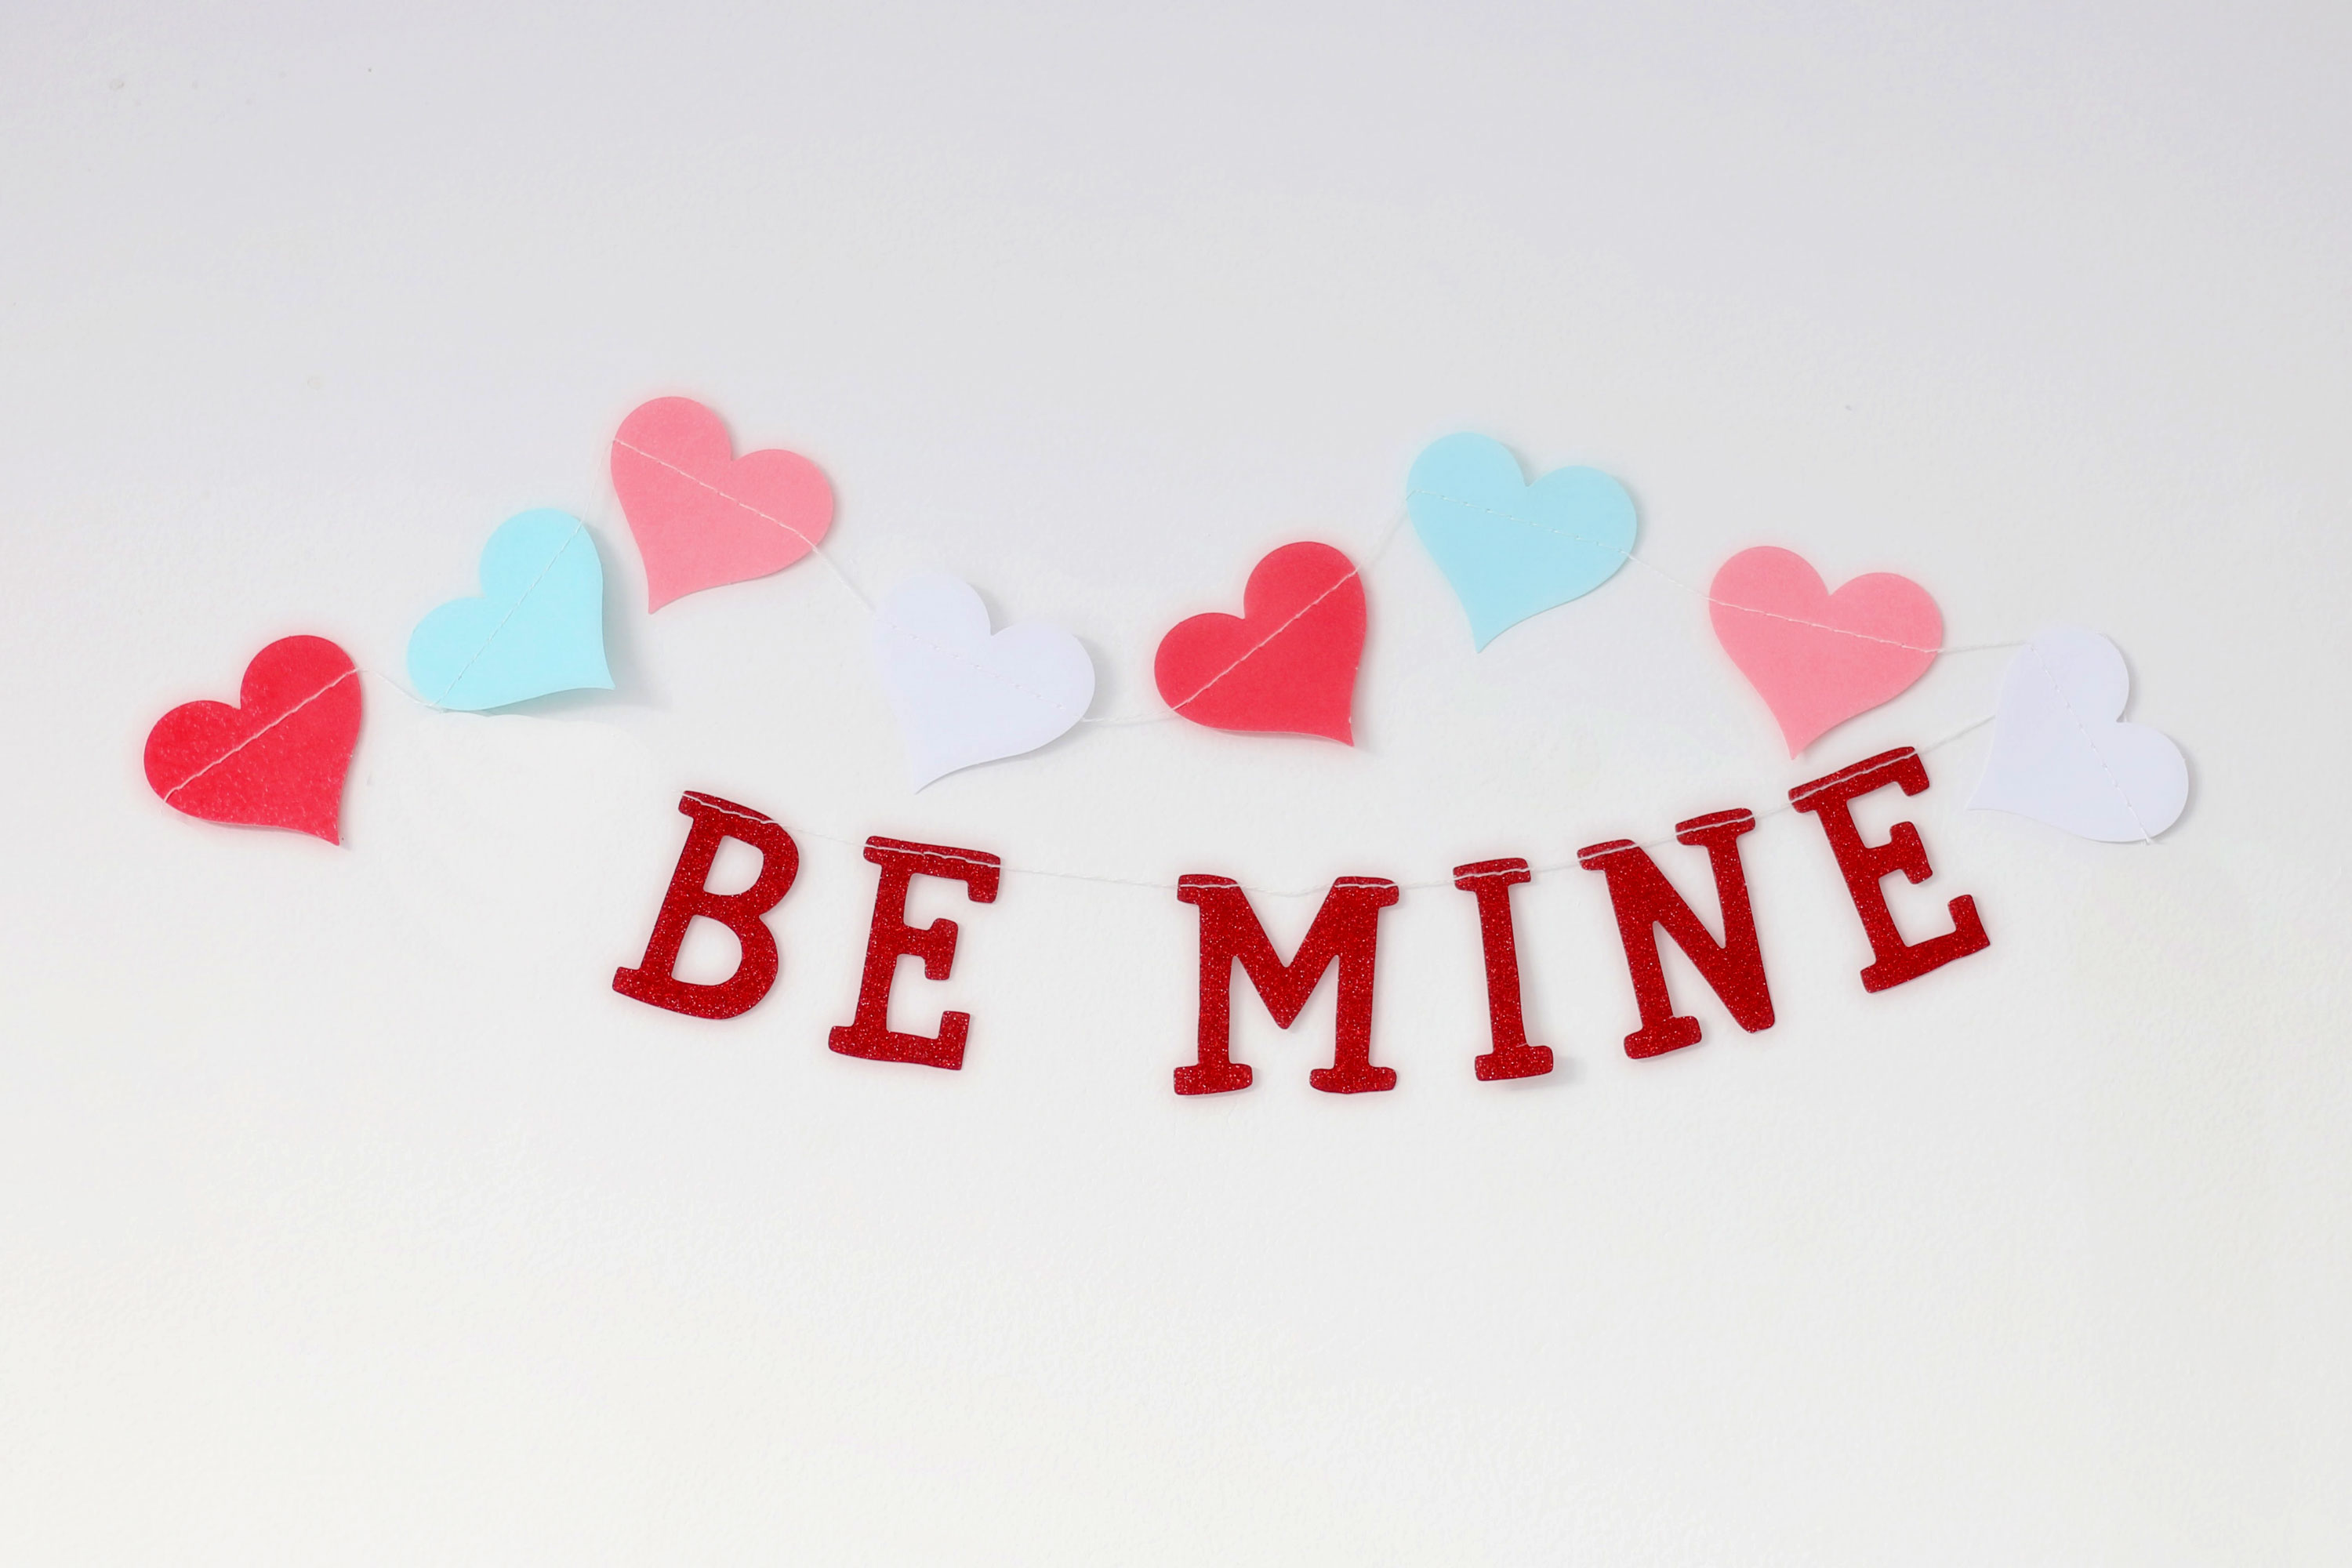 40+ Beautiful Free Valentine's Day Love Stock Image, Wallpapers